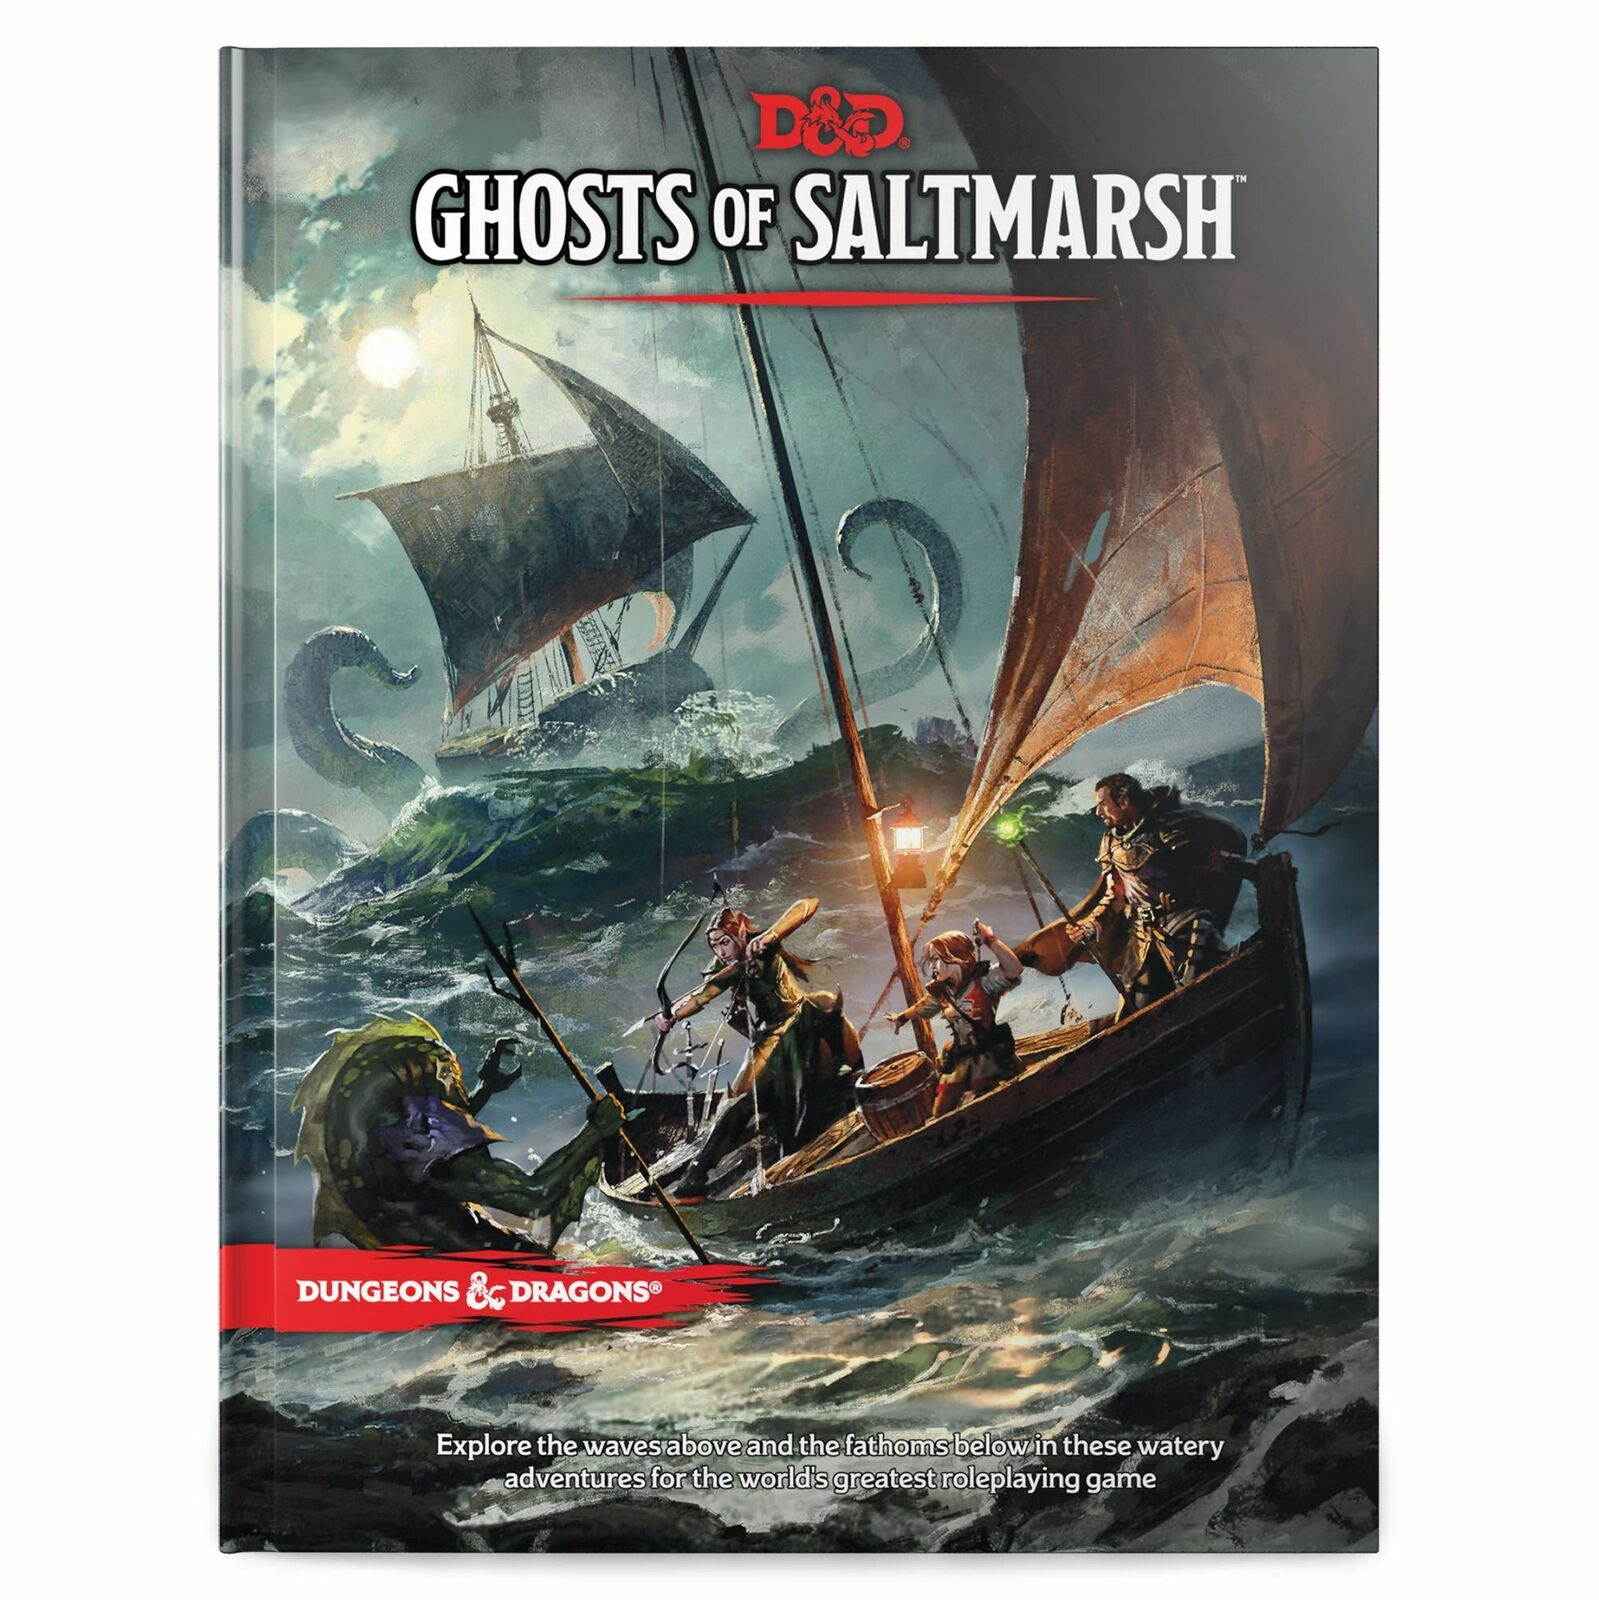 Dungeons & Dragons Ghosts of Saltmarsh Hardcover Book (D&D Adventure) Pre order